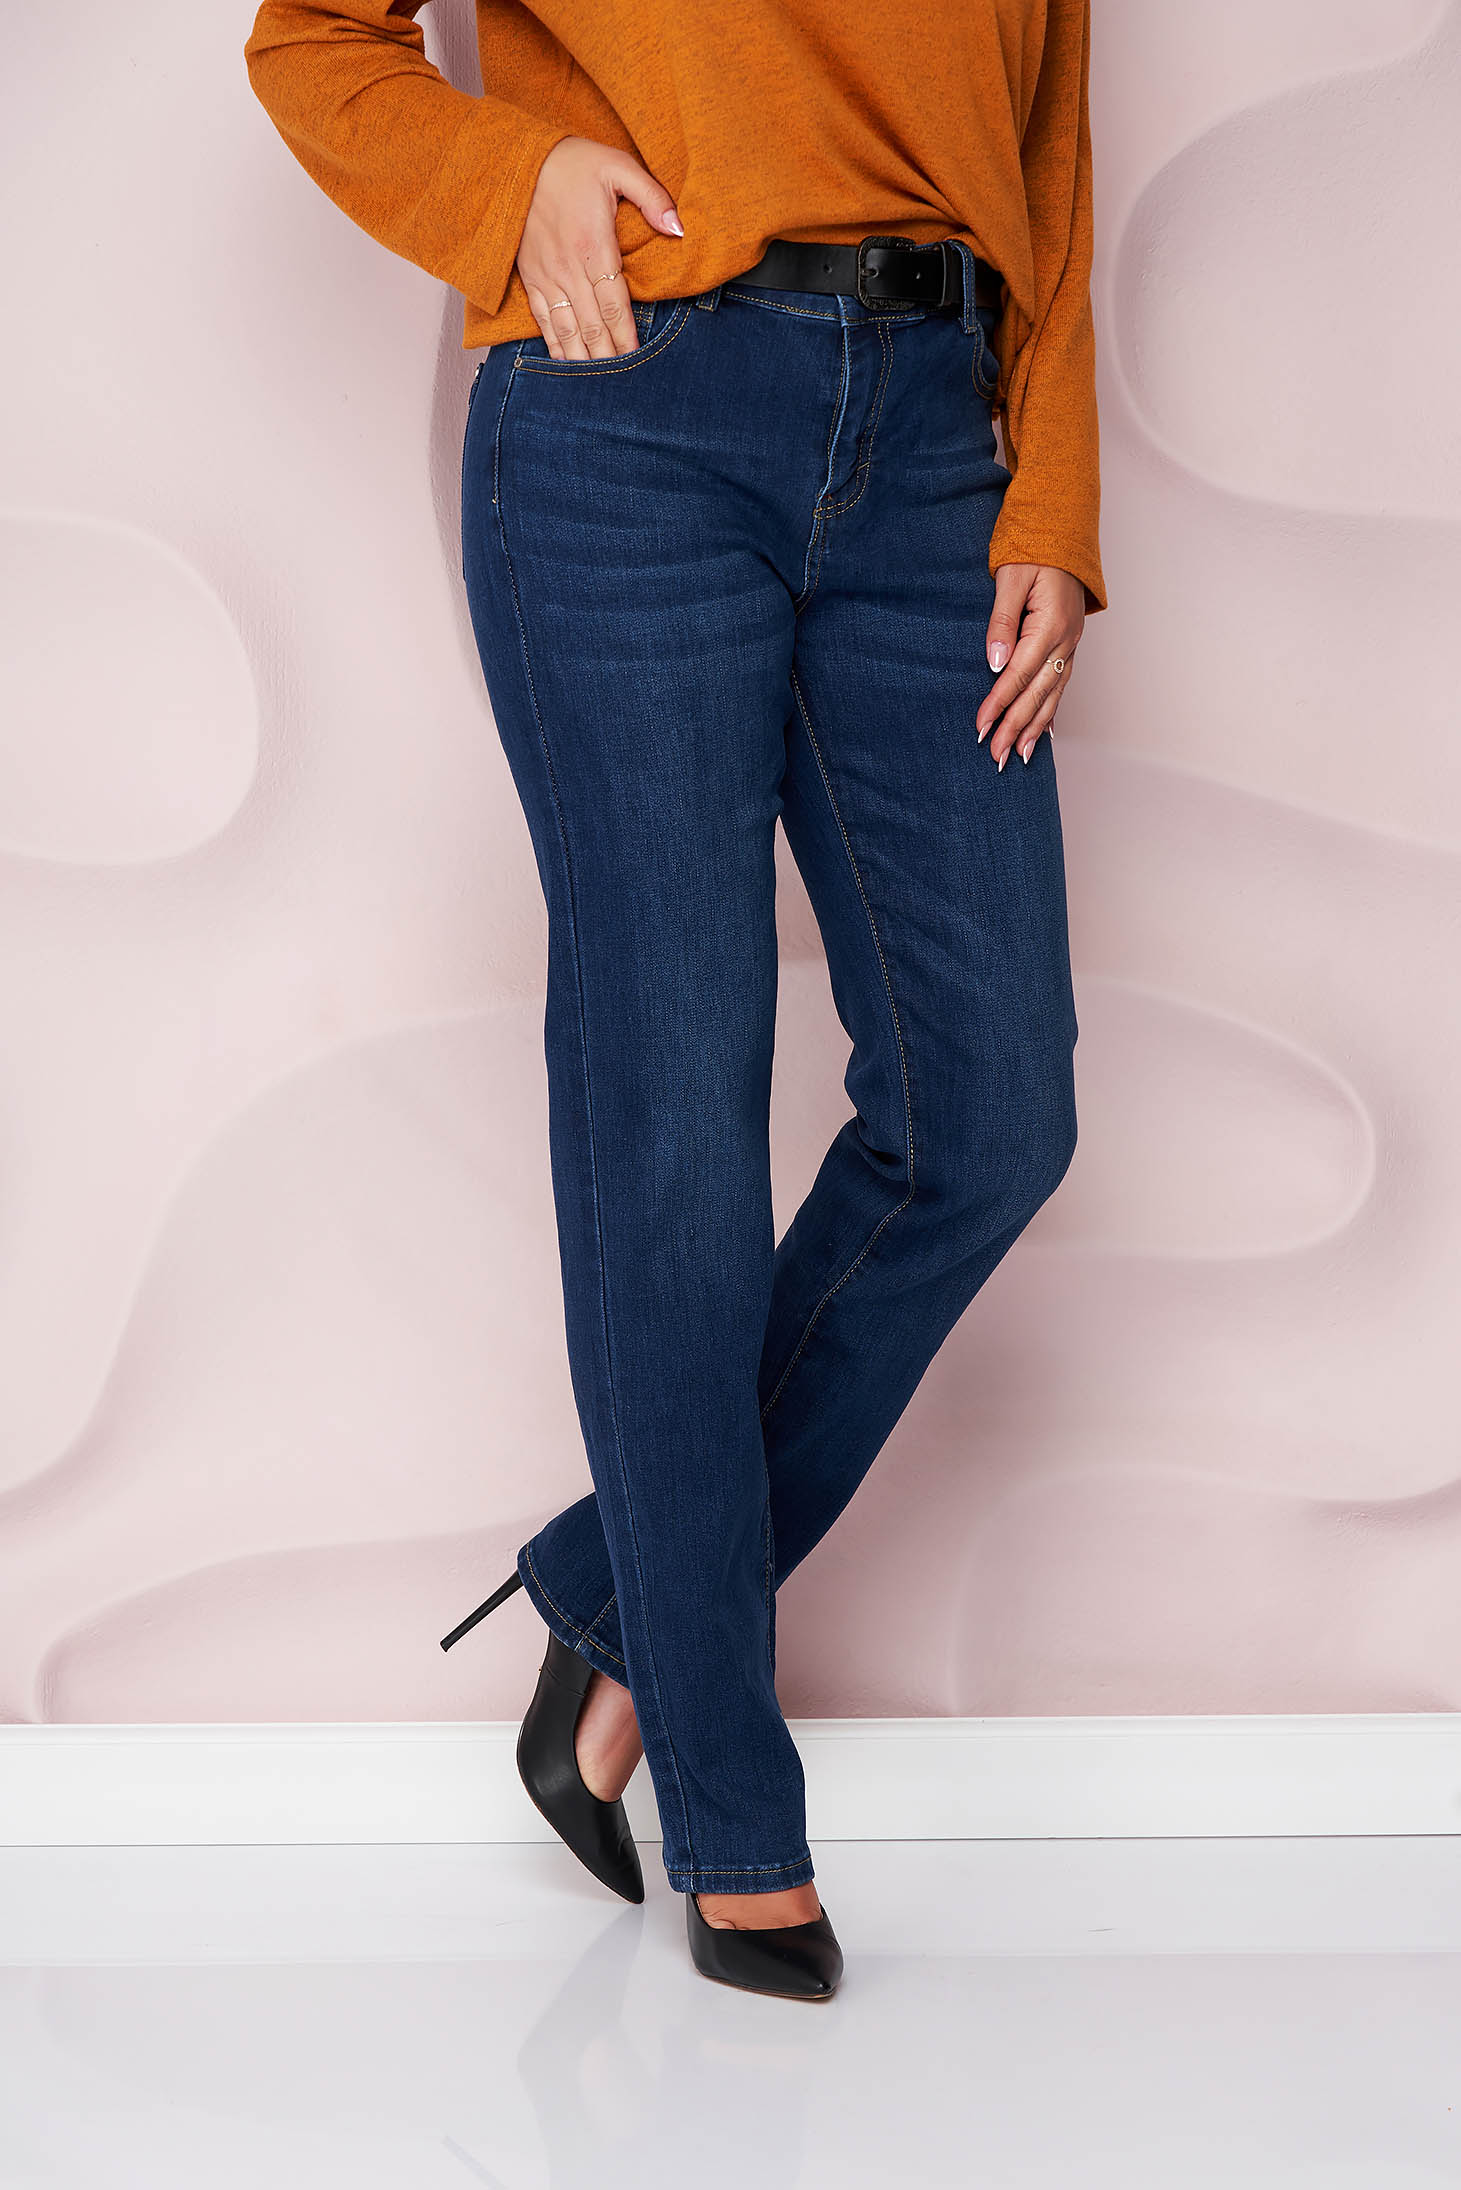 Blue jeans medium waist denim from elastic fabric with straight cut accessorized with belt